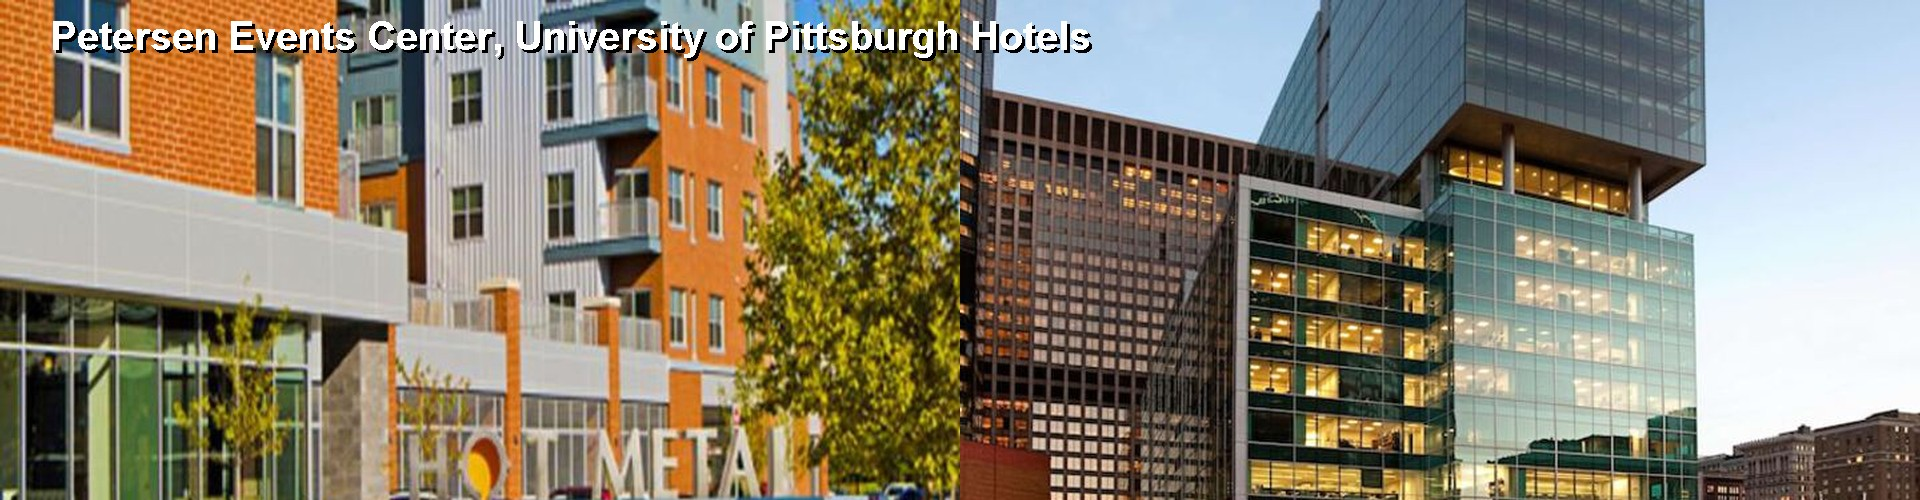 5 Best Hotels near Petersen Events Center, University of Pittsburgh